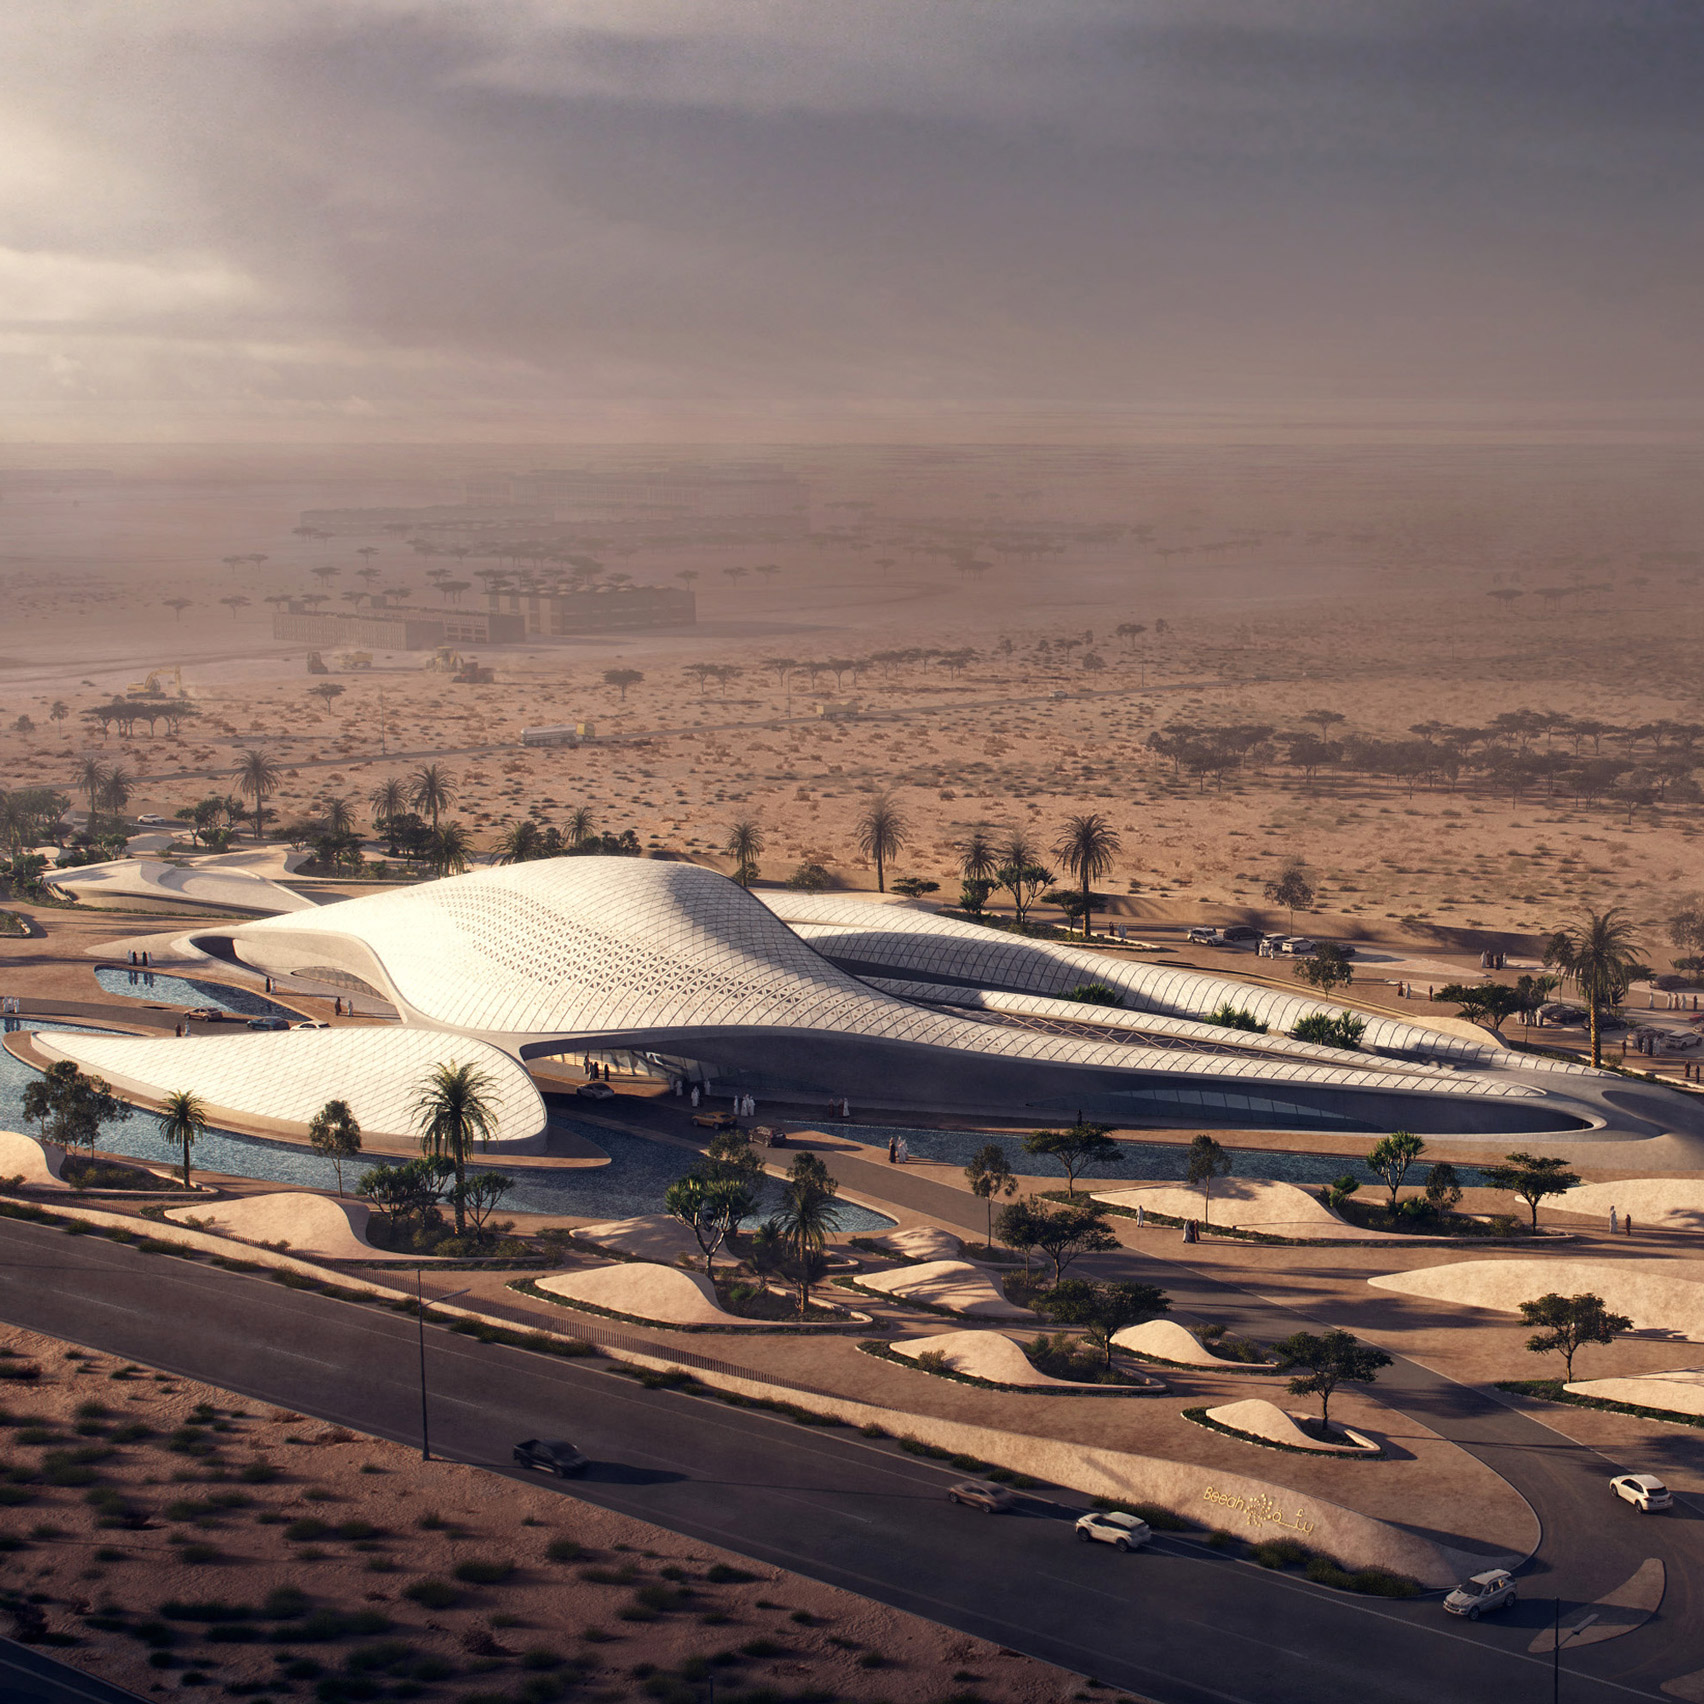 12 new buildings to look forward to in 2020: Bee'ah Headquarters by Zaha Hadid Architects